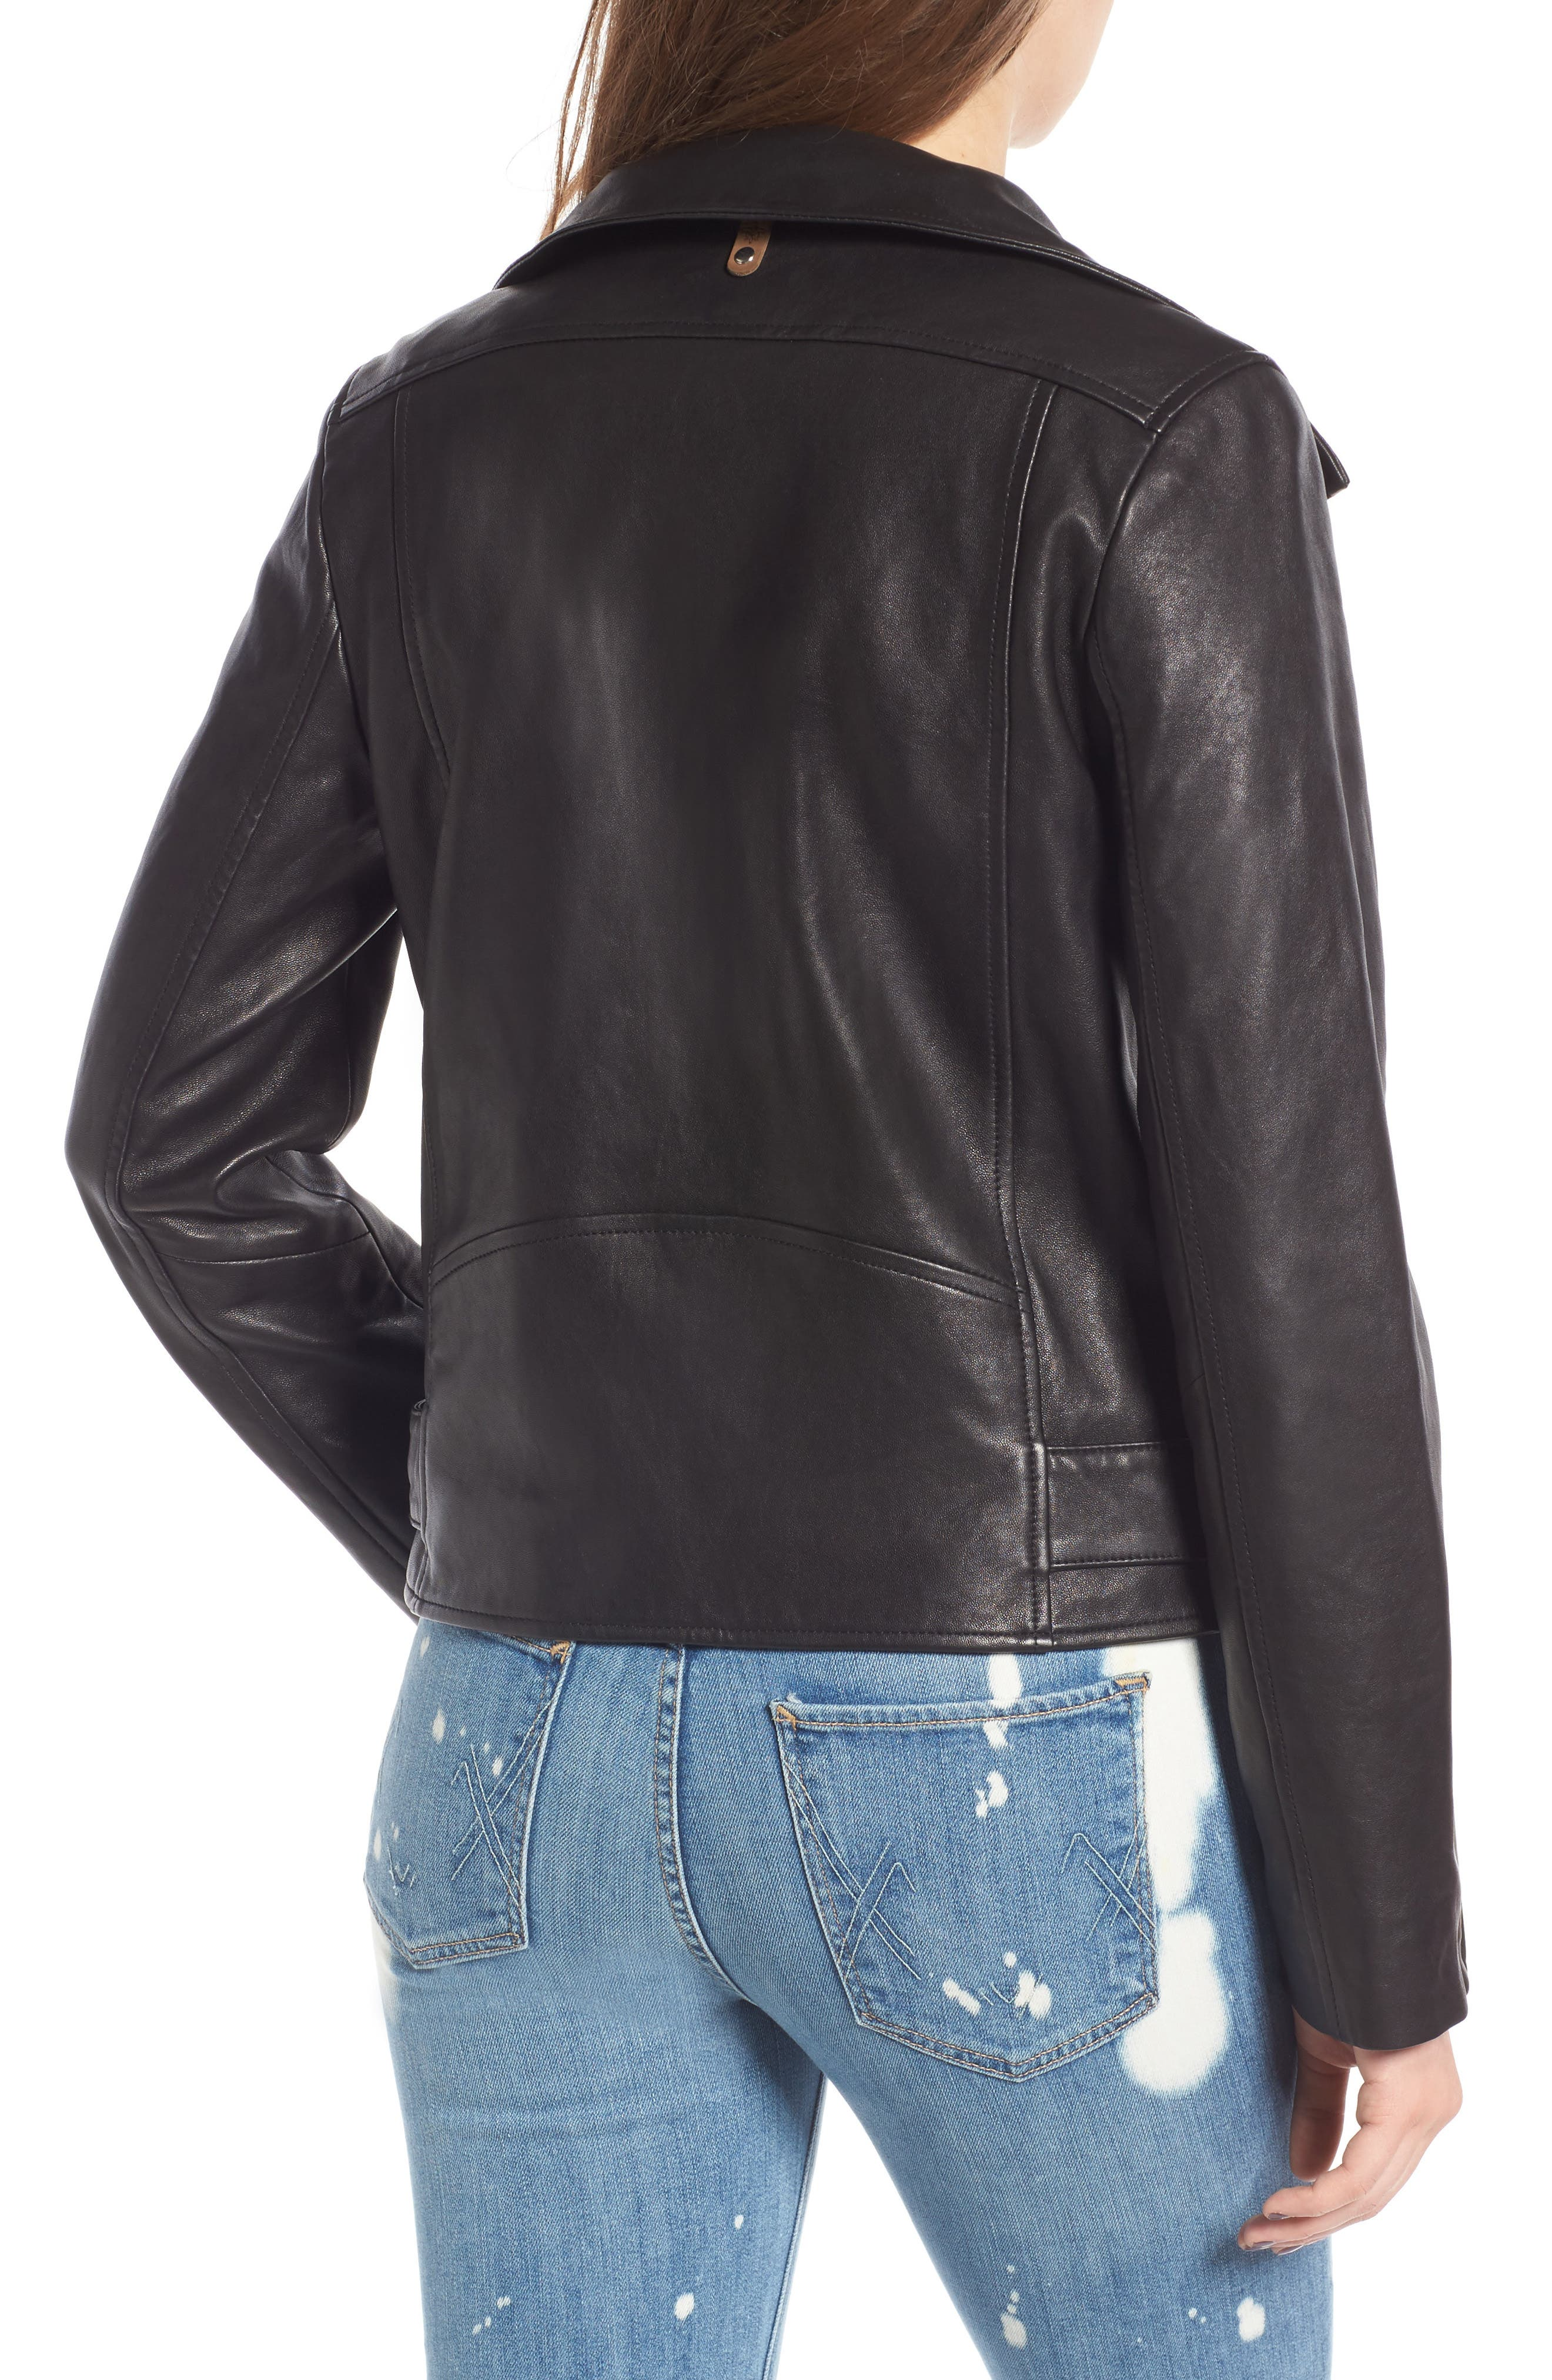 Miela-N Belted Leather Moto Jacket,                             Alternate thumbnail 2, color,                             001